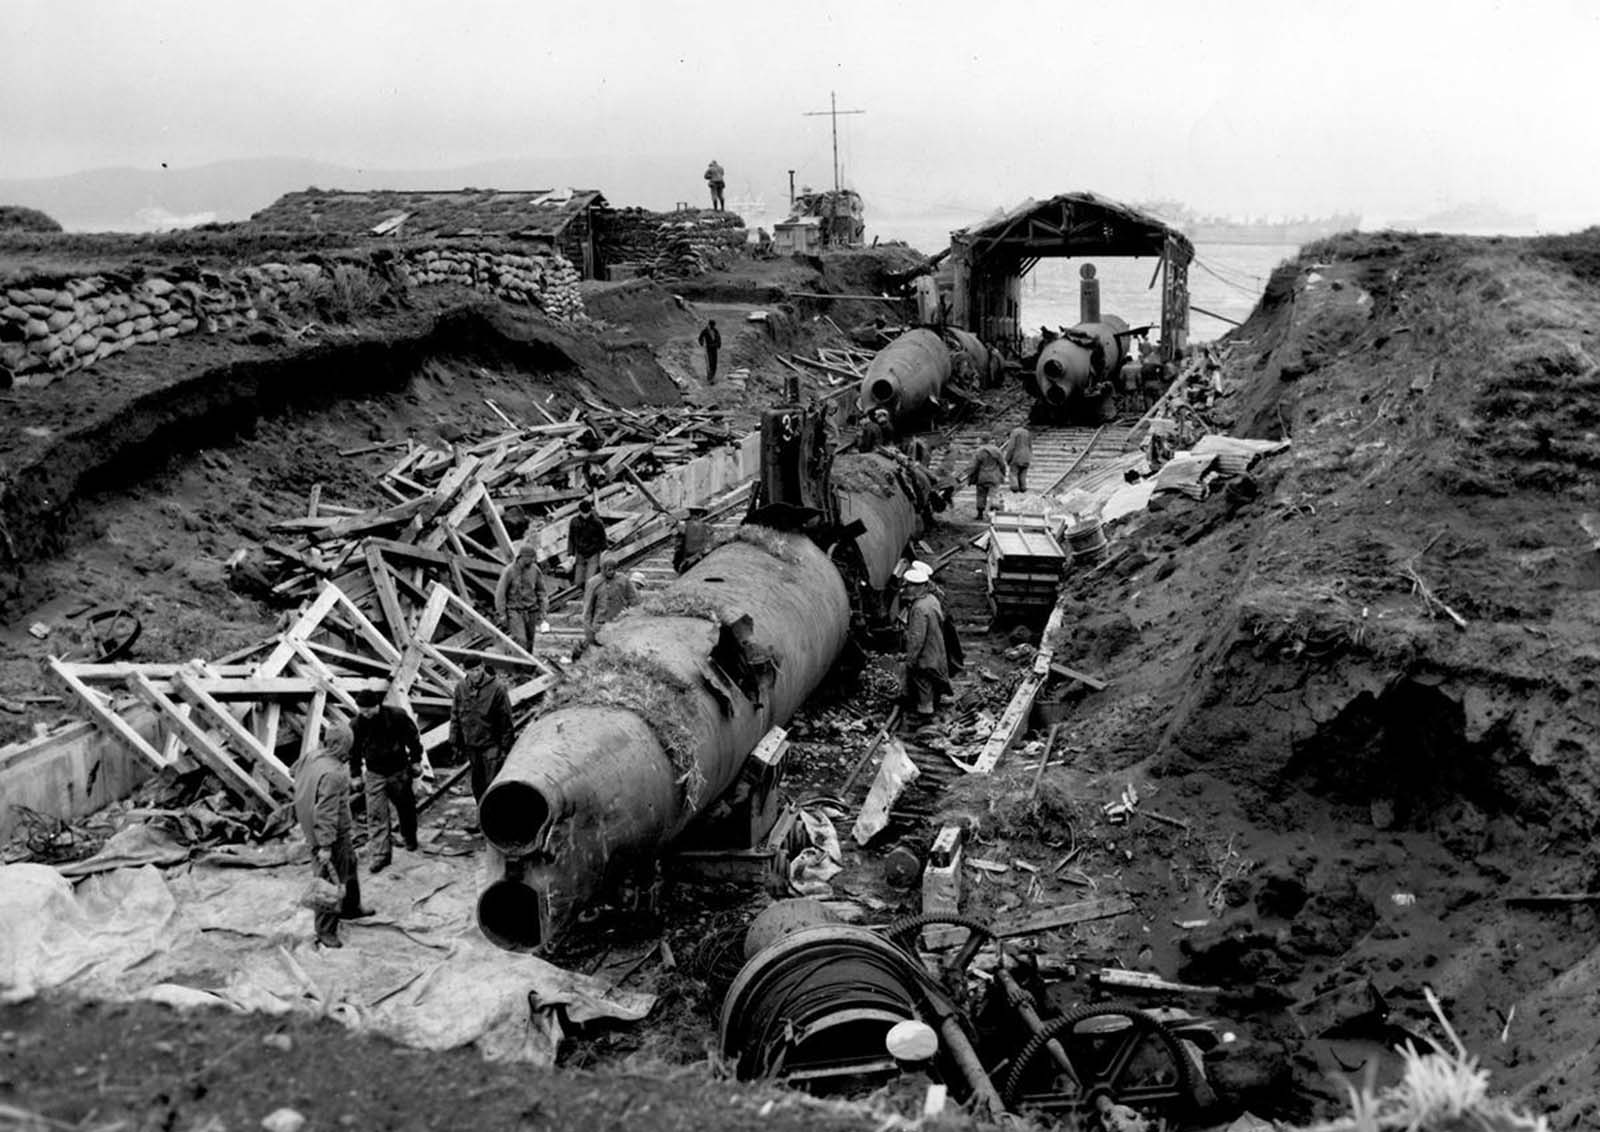 A heavily damaged midget submarine base constructed by occupying Japanese forces on Kiska Island, photo taken sometime in 1943, after Allied forces retook the island.